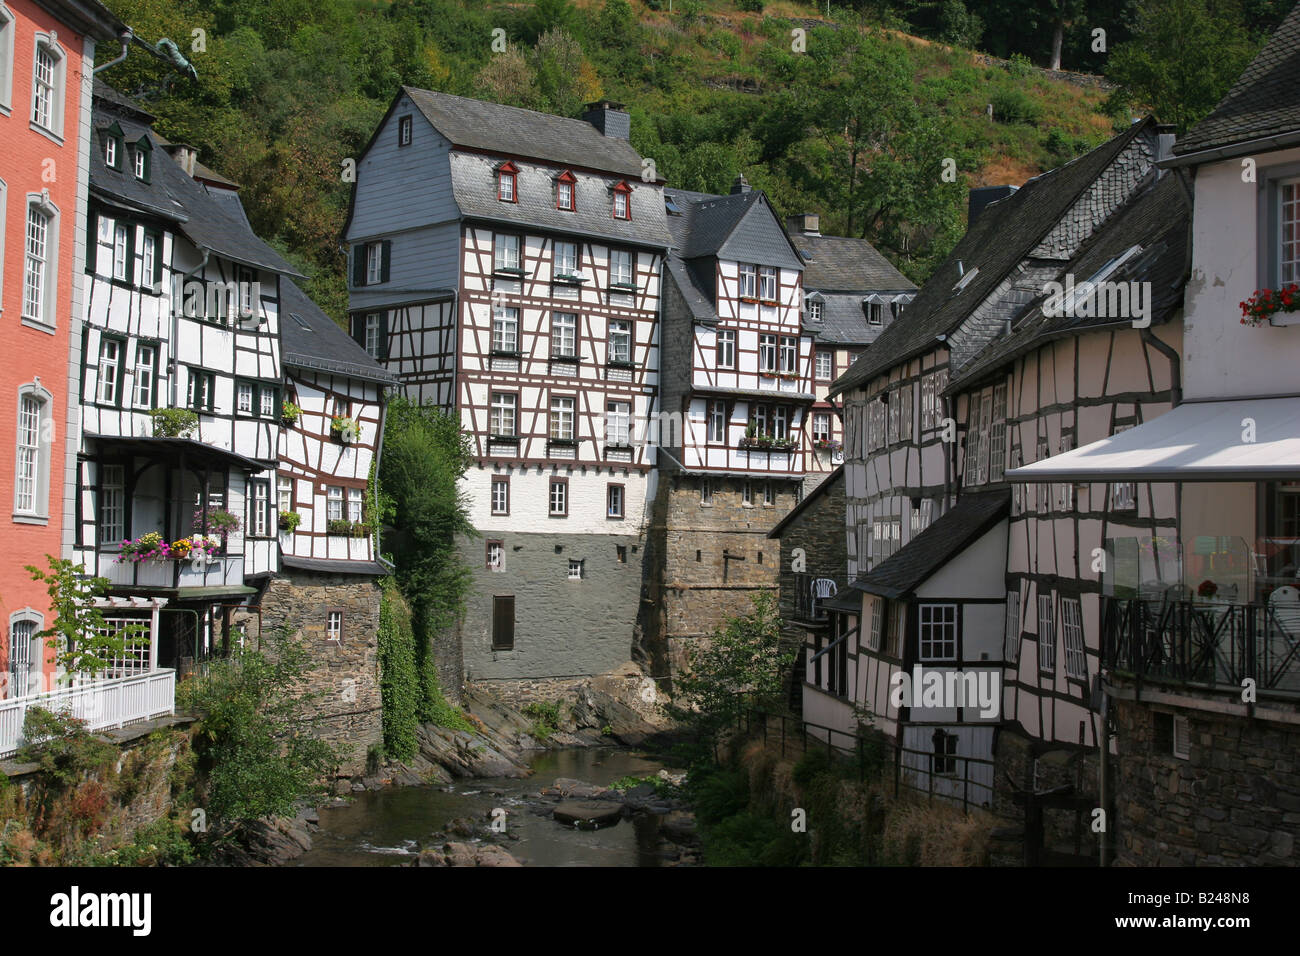 Traditional German Architecture Fachwerk In The Town Of Monschau Stock Photo Royalty Free